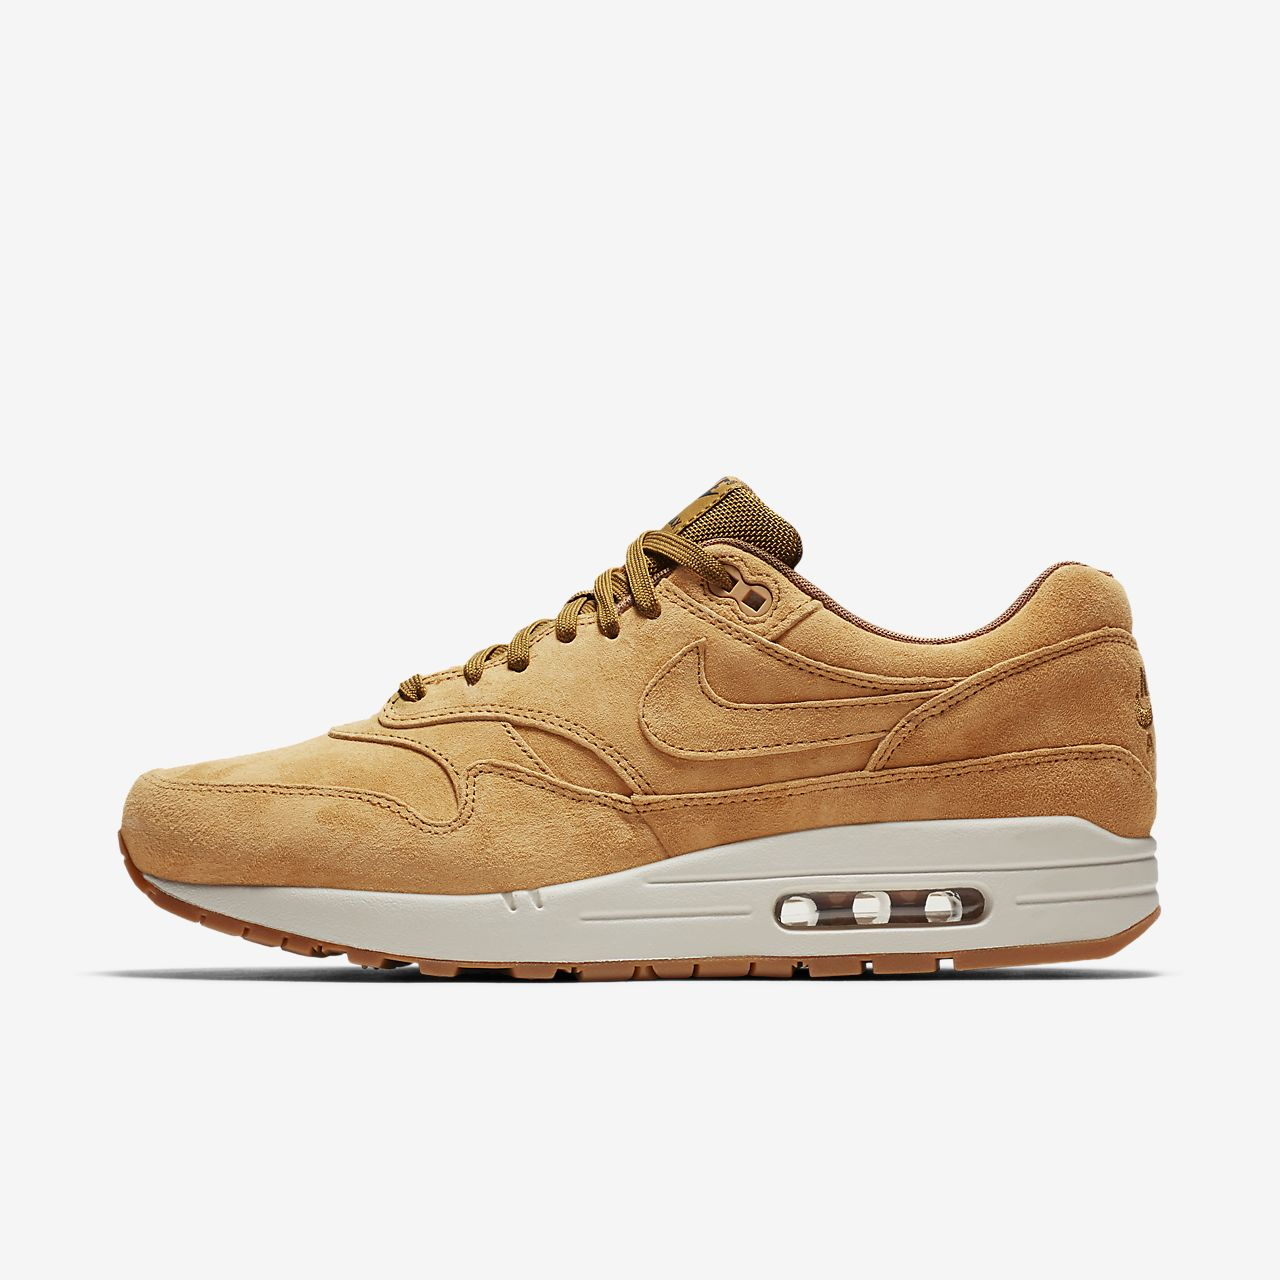 Men's Trainers Nike Air Max 90 Essential brown 50% off